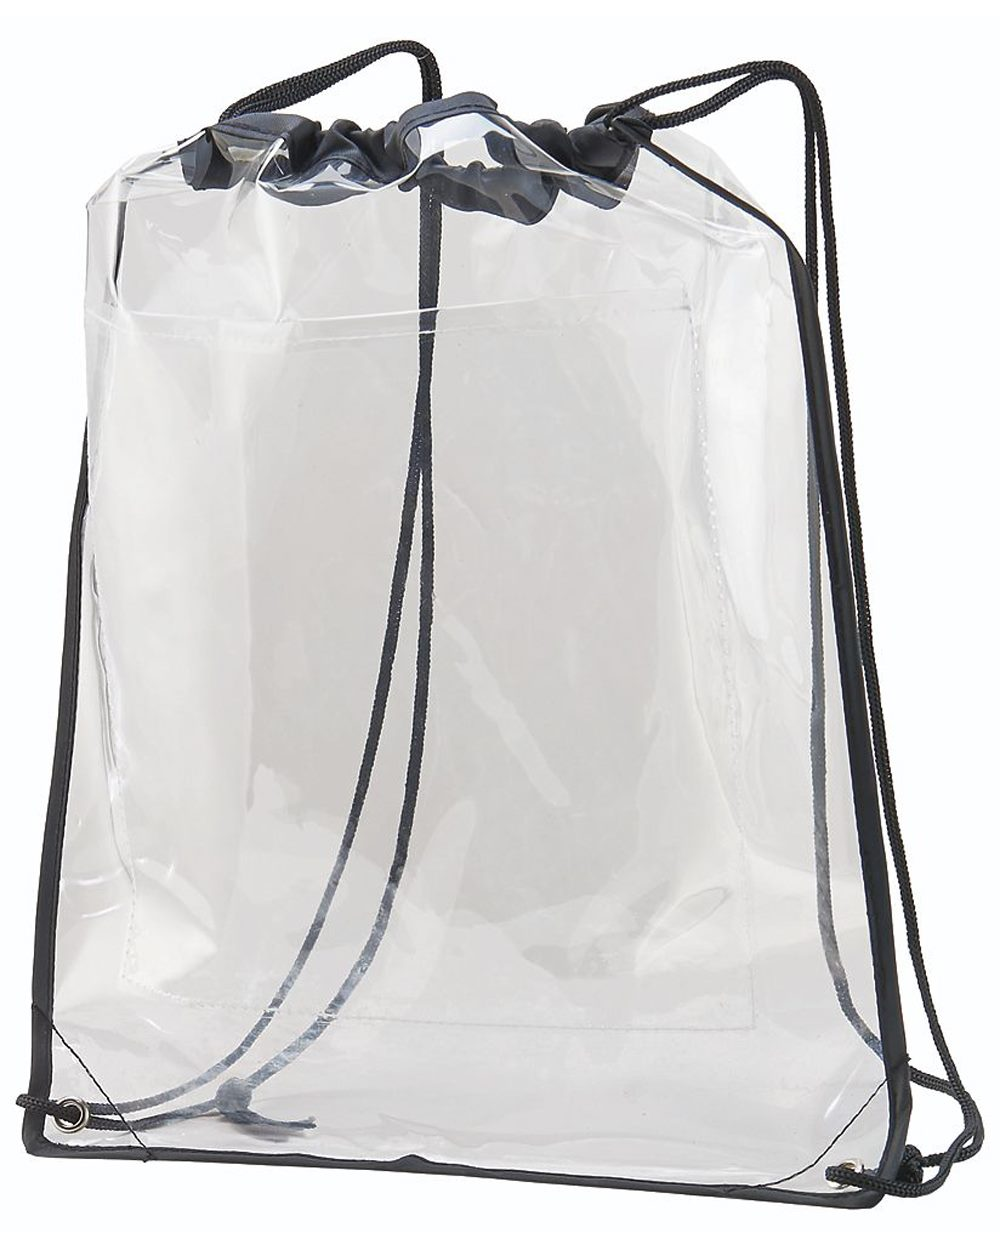 Augusta Sportswear 2200 - Clear Cinch Bag